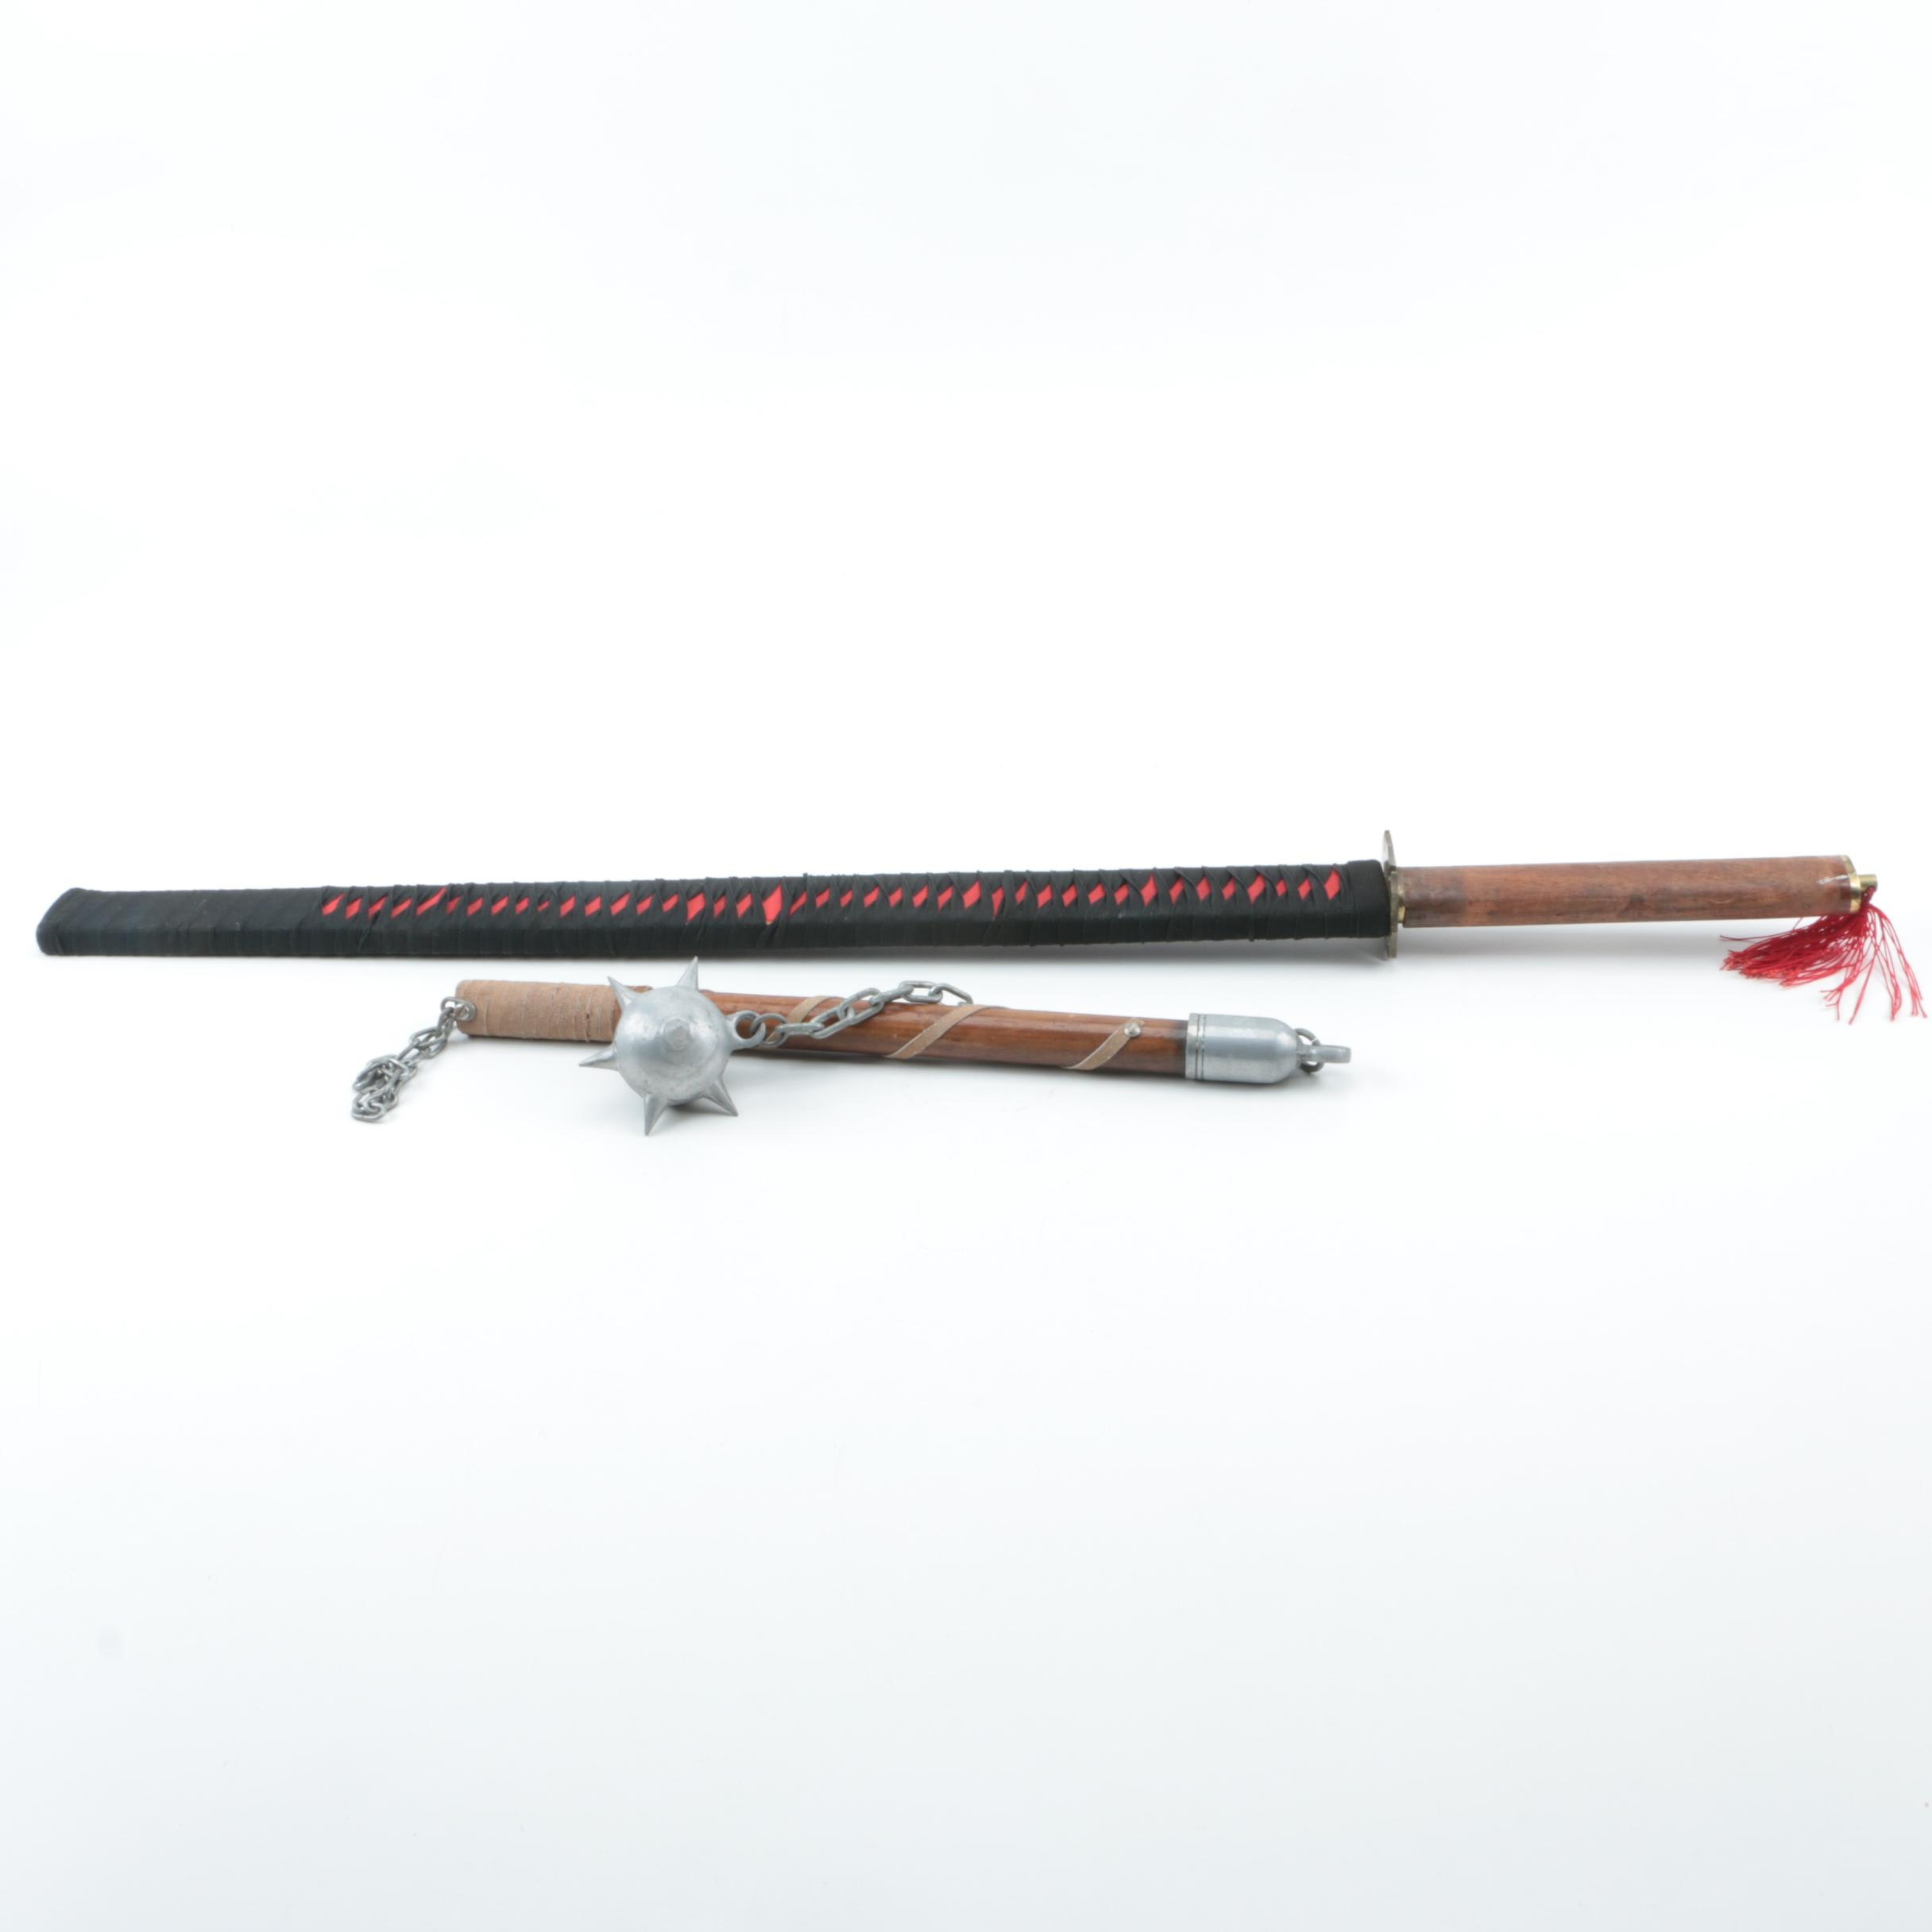 Katana Sword with Scabbard and Spiked Ball and Chain Flail